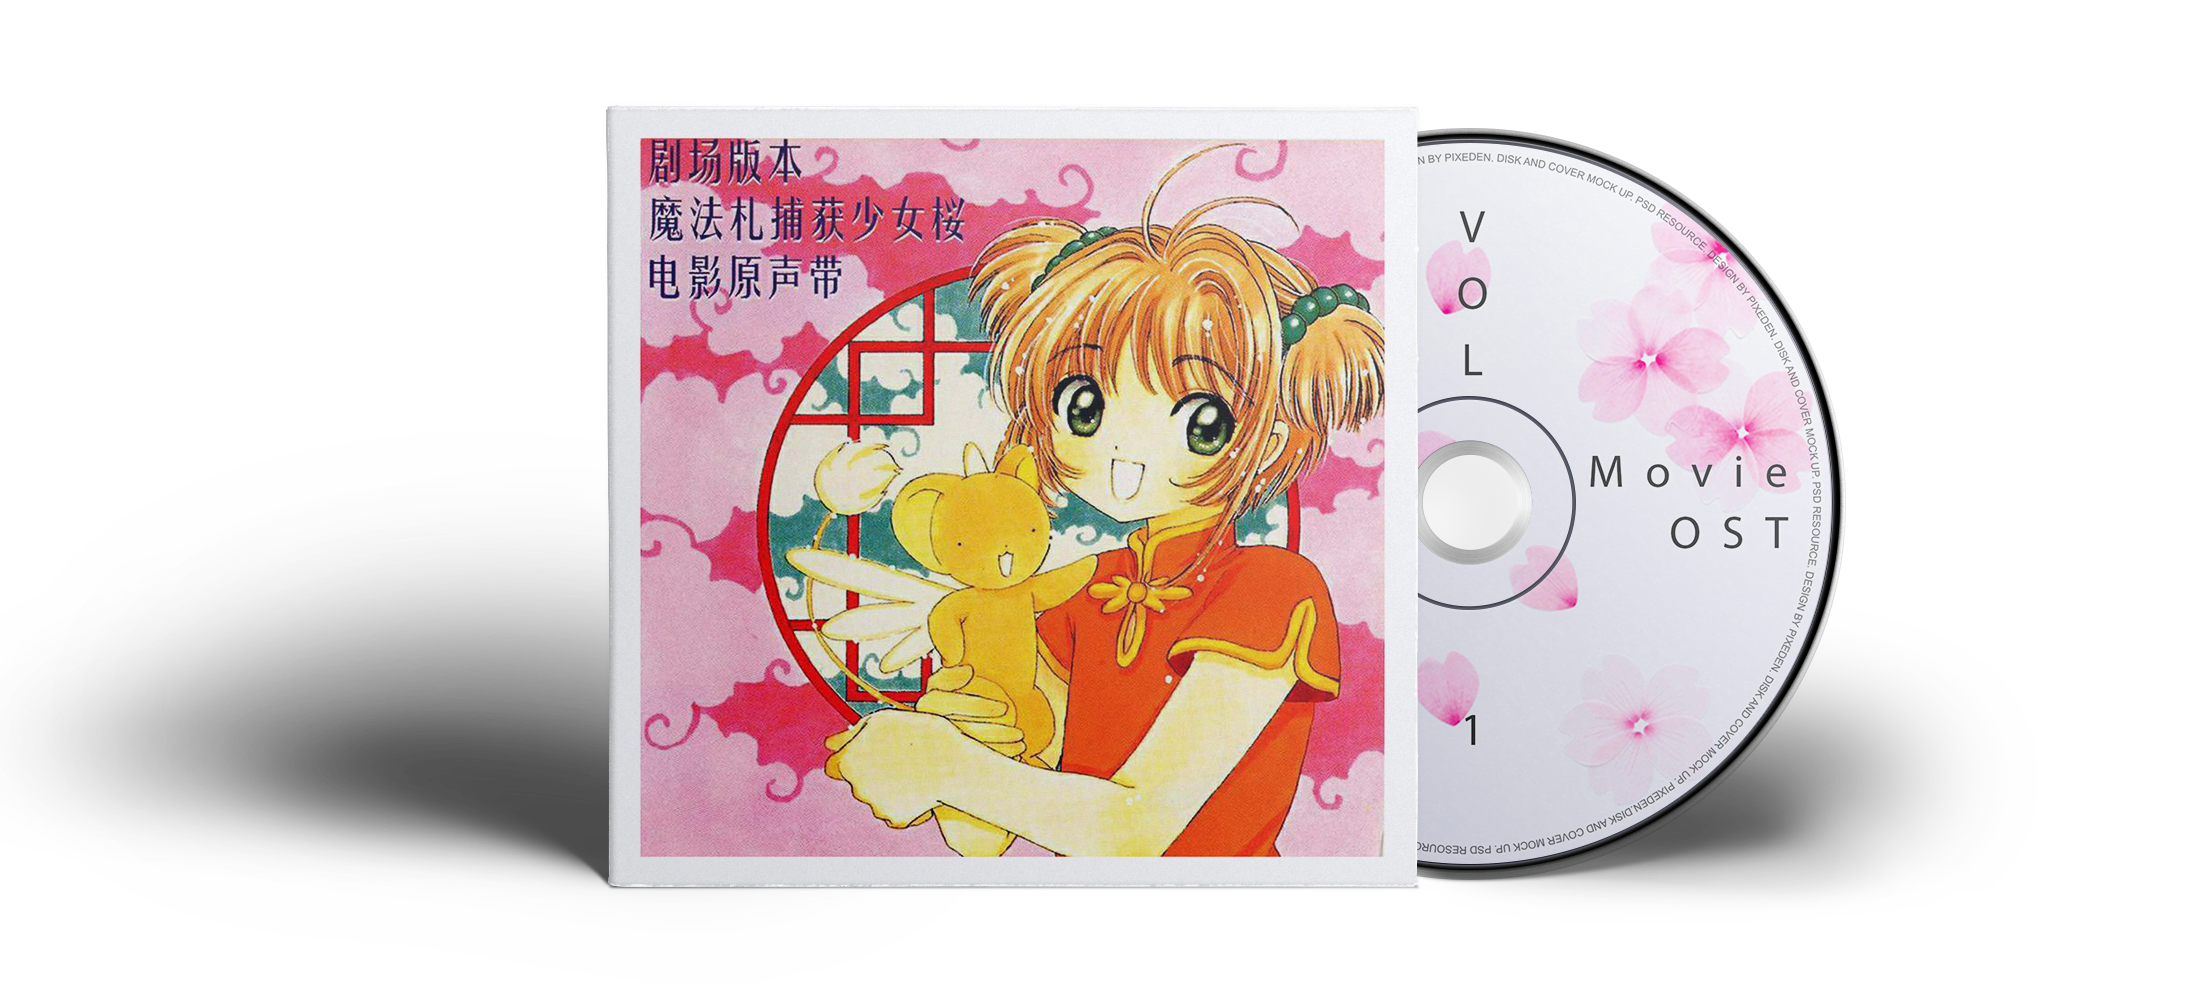 Sakura Cardcaptor The Movie Hong Kong OST